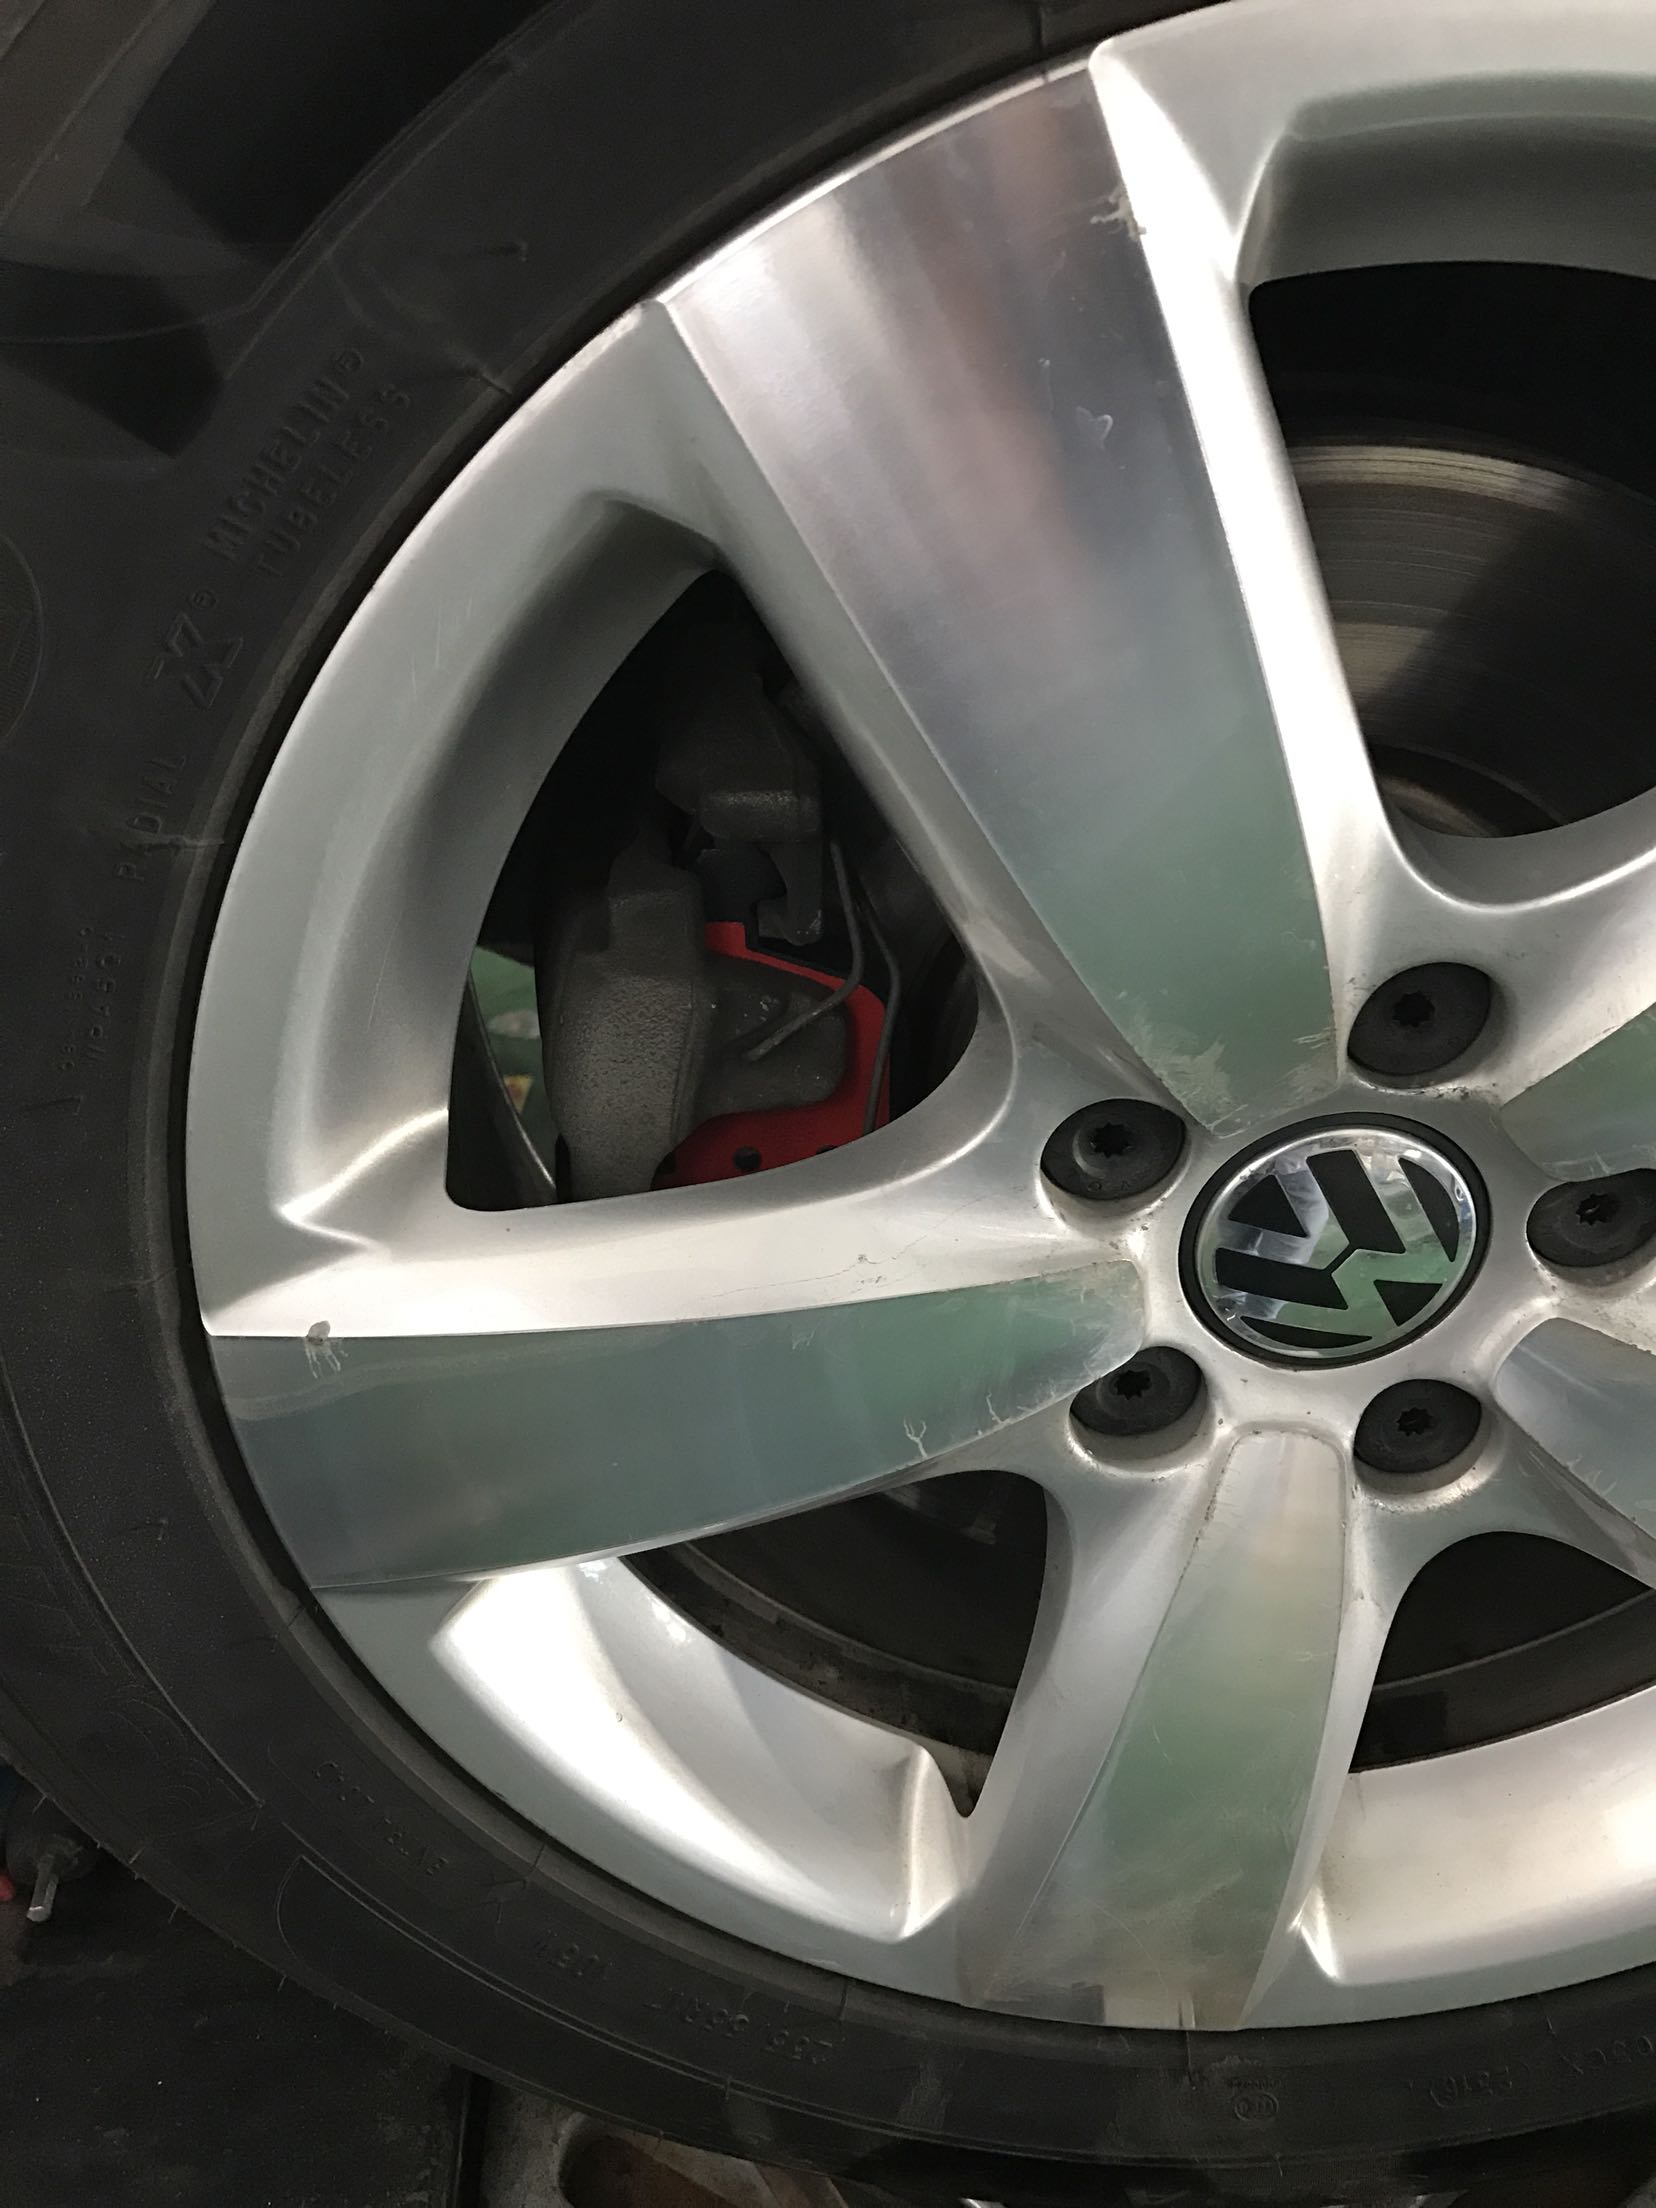 The original car piece used abnormal sound, to catch up with the activities for a new look, after the change is not too much feeling. It is thick, and the brakes are on.